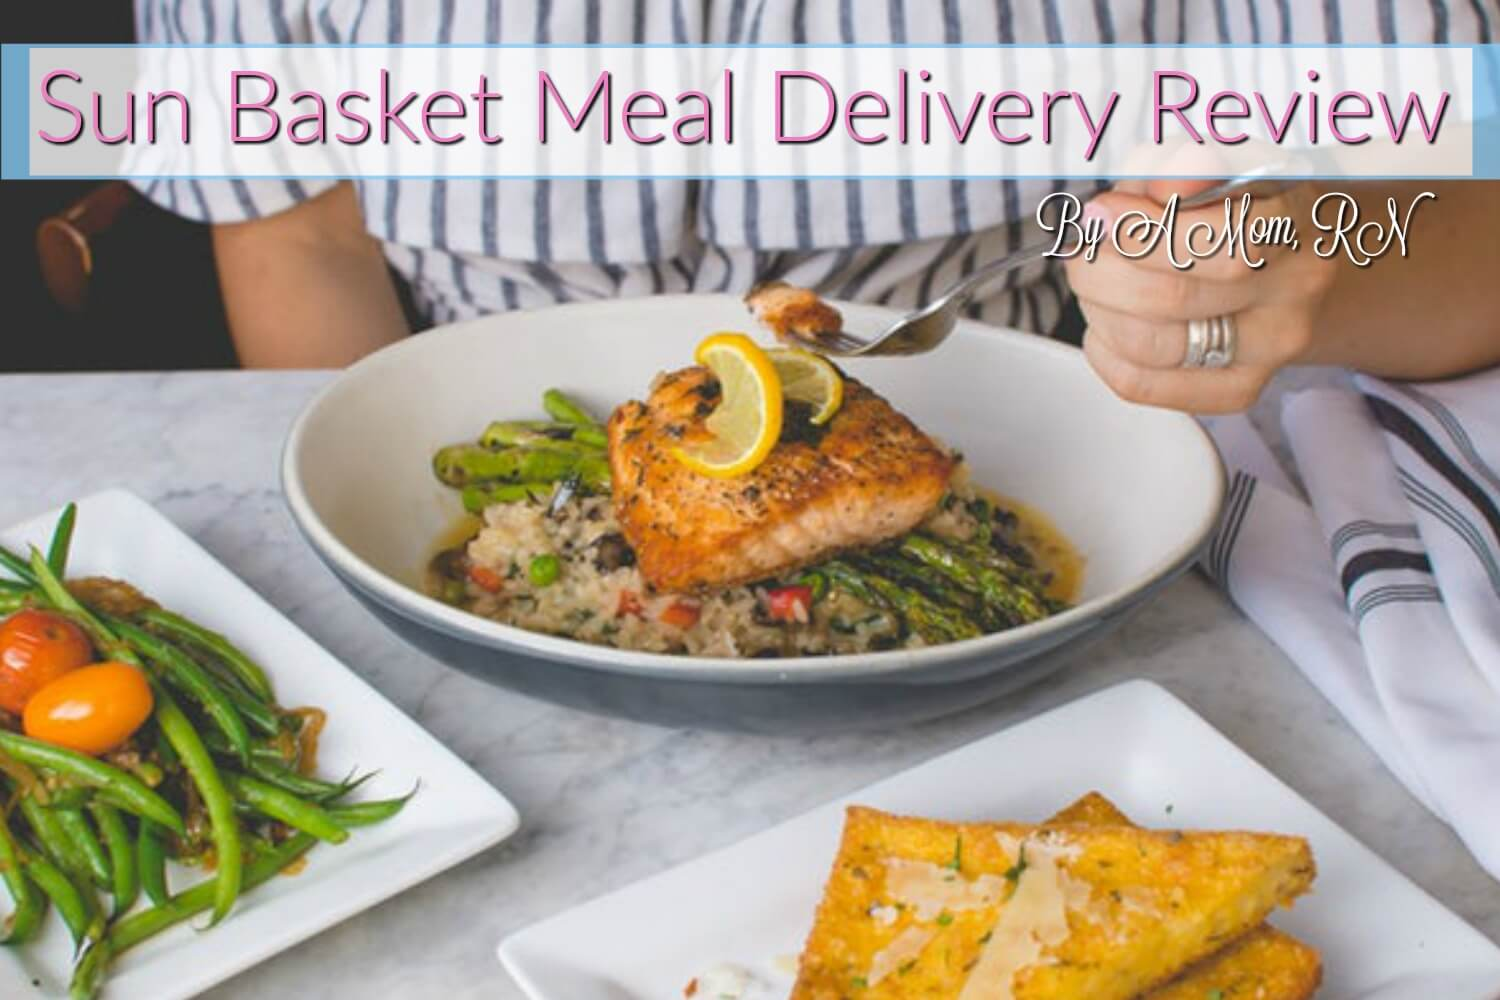 Sunbasket Meal Delivery Review By A Mom, RN